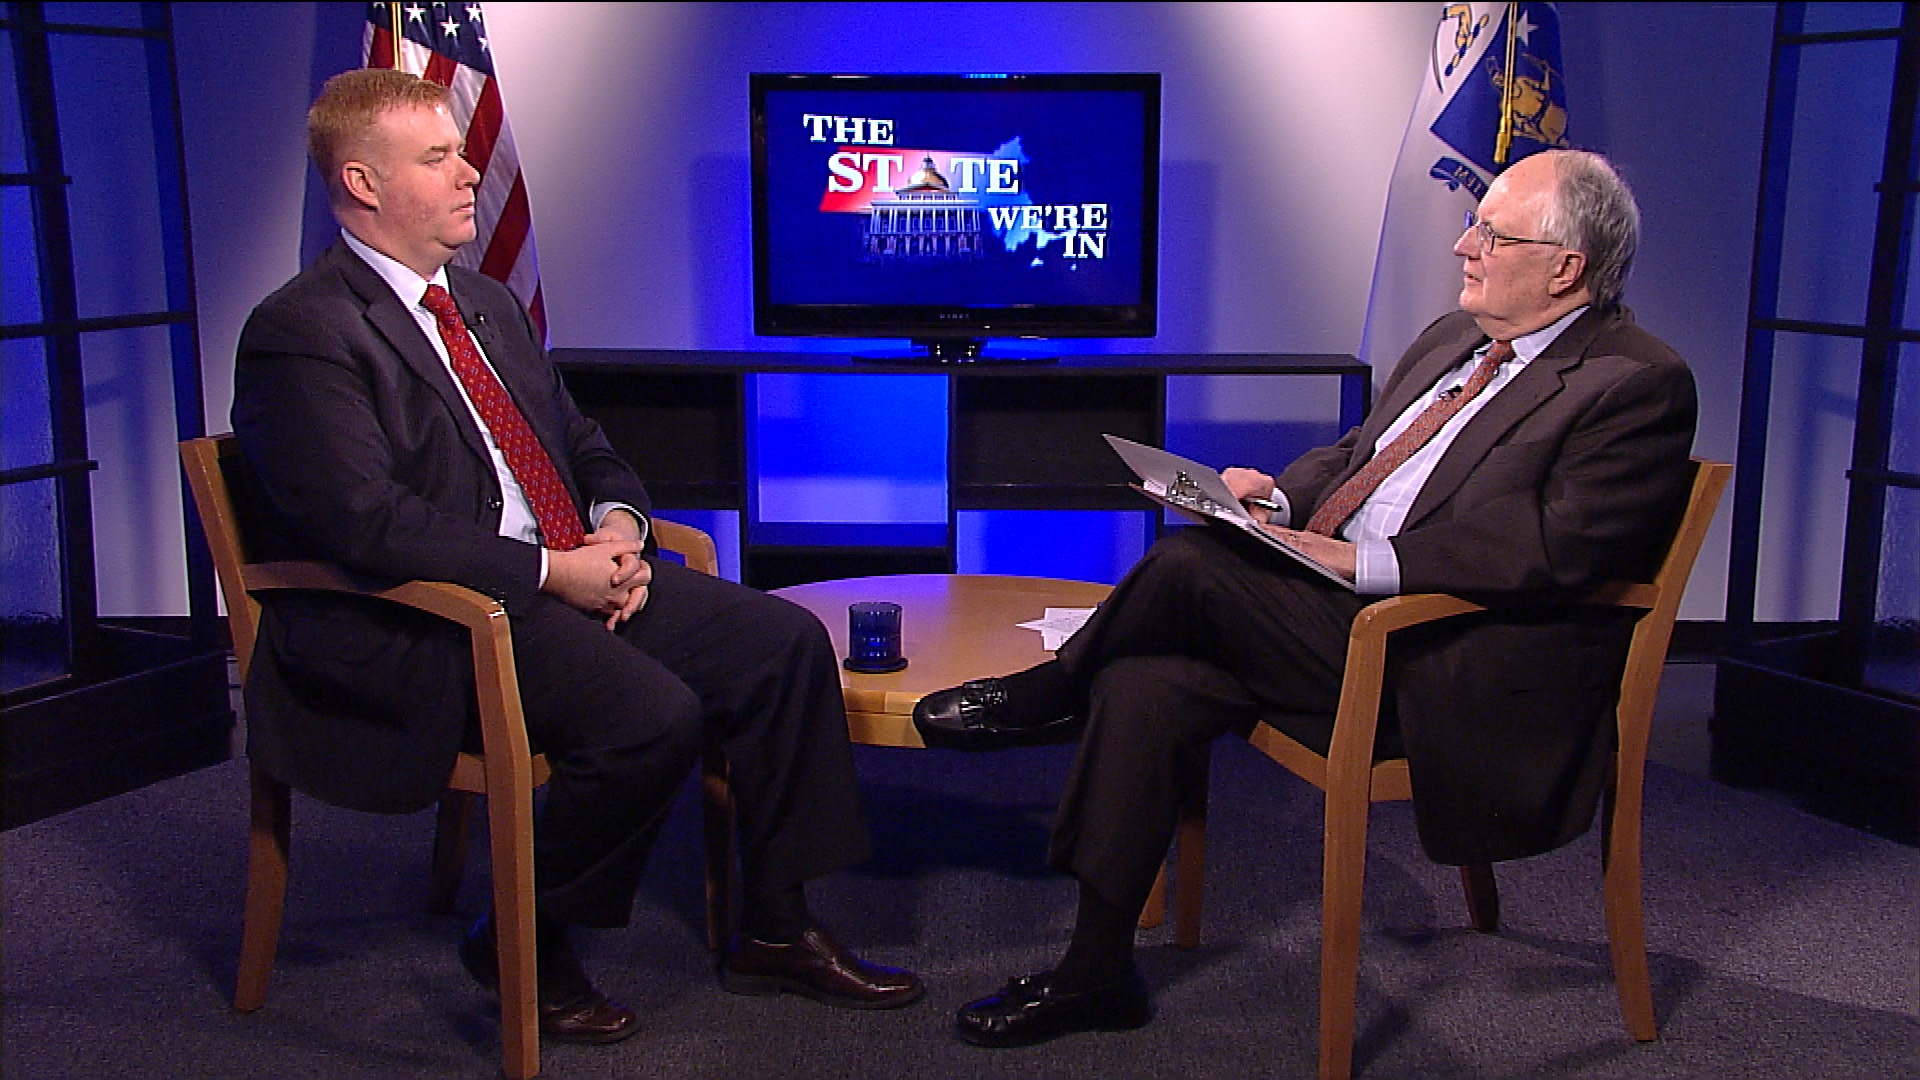 State Sen. Jim Welch discusses the coming 2018 Massachusetts State Budget debate and the likelihood of additional state taxes in 2017.